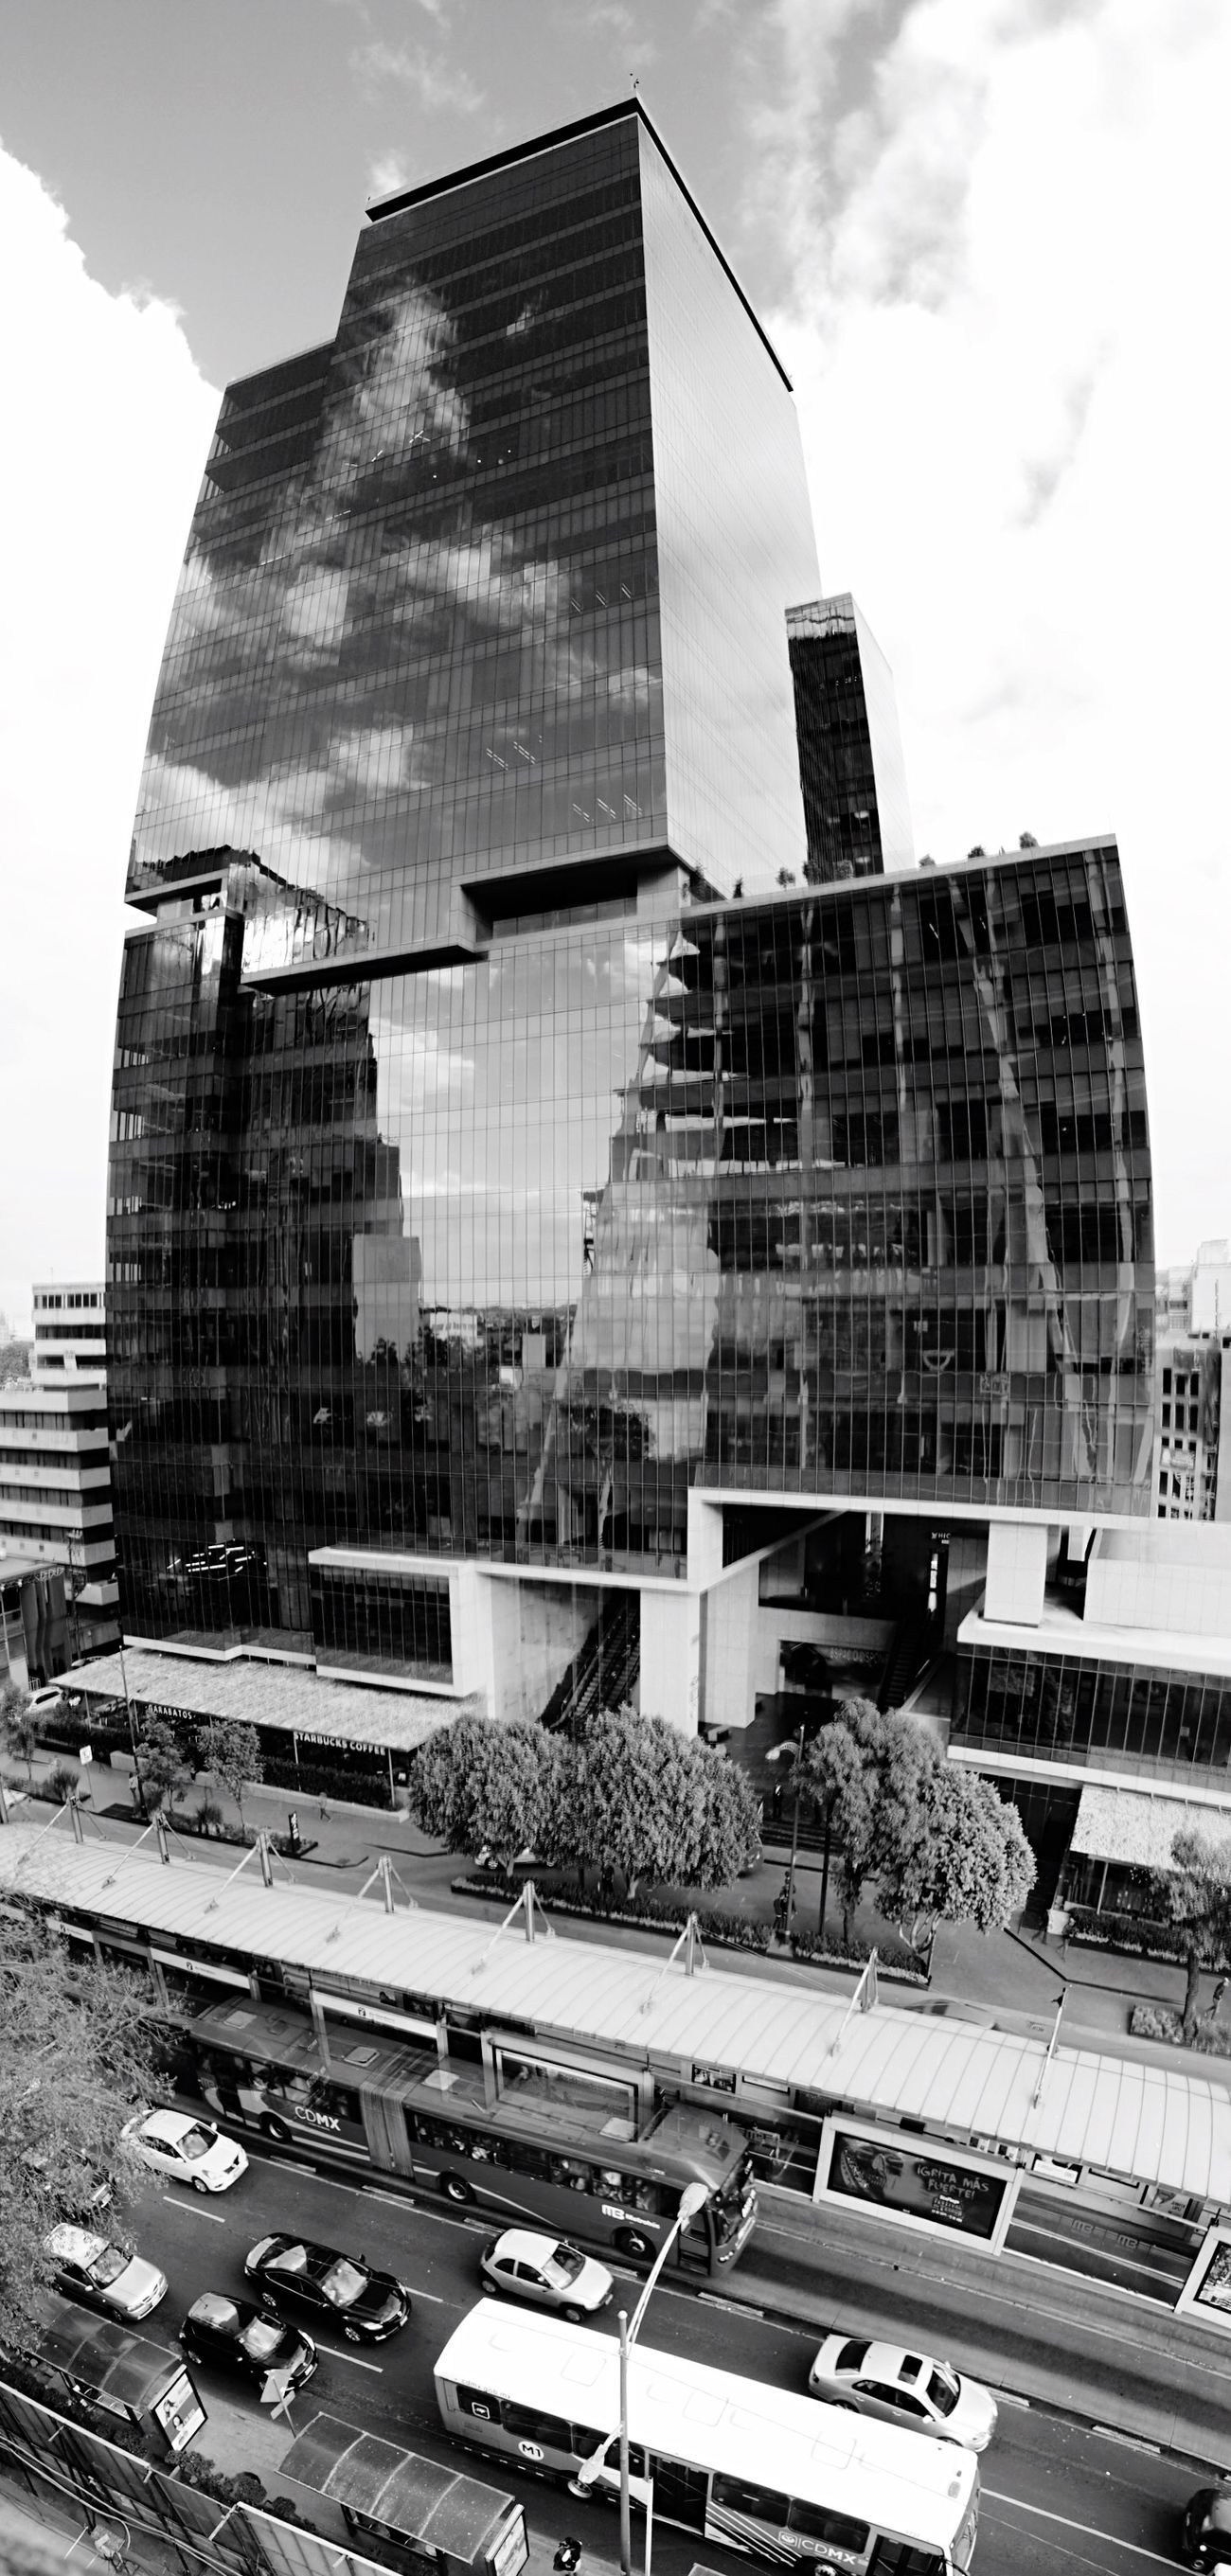 • [INSURGENTES 1458] #colonnieryasociados www.colonnieryasociados.com FOTO: ©JosueMejia2016 | Building Exterior Architecture Built Structure City Modern Day Skyscraper Sky Outdoors Architecture Streetphotography Eye4thestreets Street Photography Cityscapes WeAreJuxt.com Darkness And Light Mobilephotography AMPt - Street AMPt_community Yeahrchitectures Eye4 The Streets Urban Geometry EyeEm Best Shots - Architecture EyeEm Best Shots - The Streets Change Your Perspective #arquitecturamx